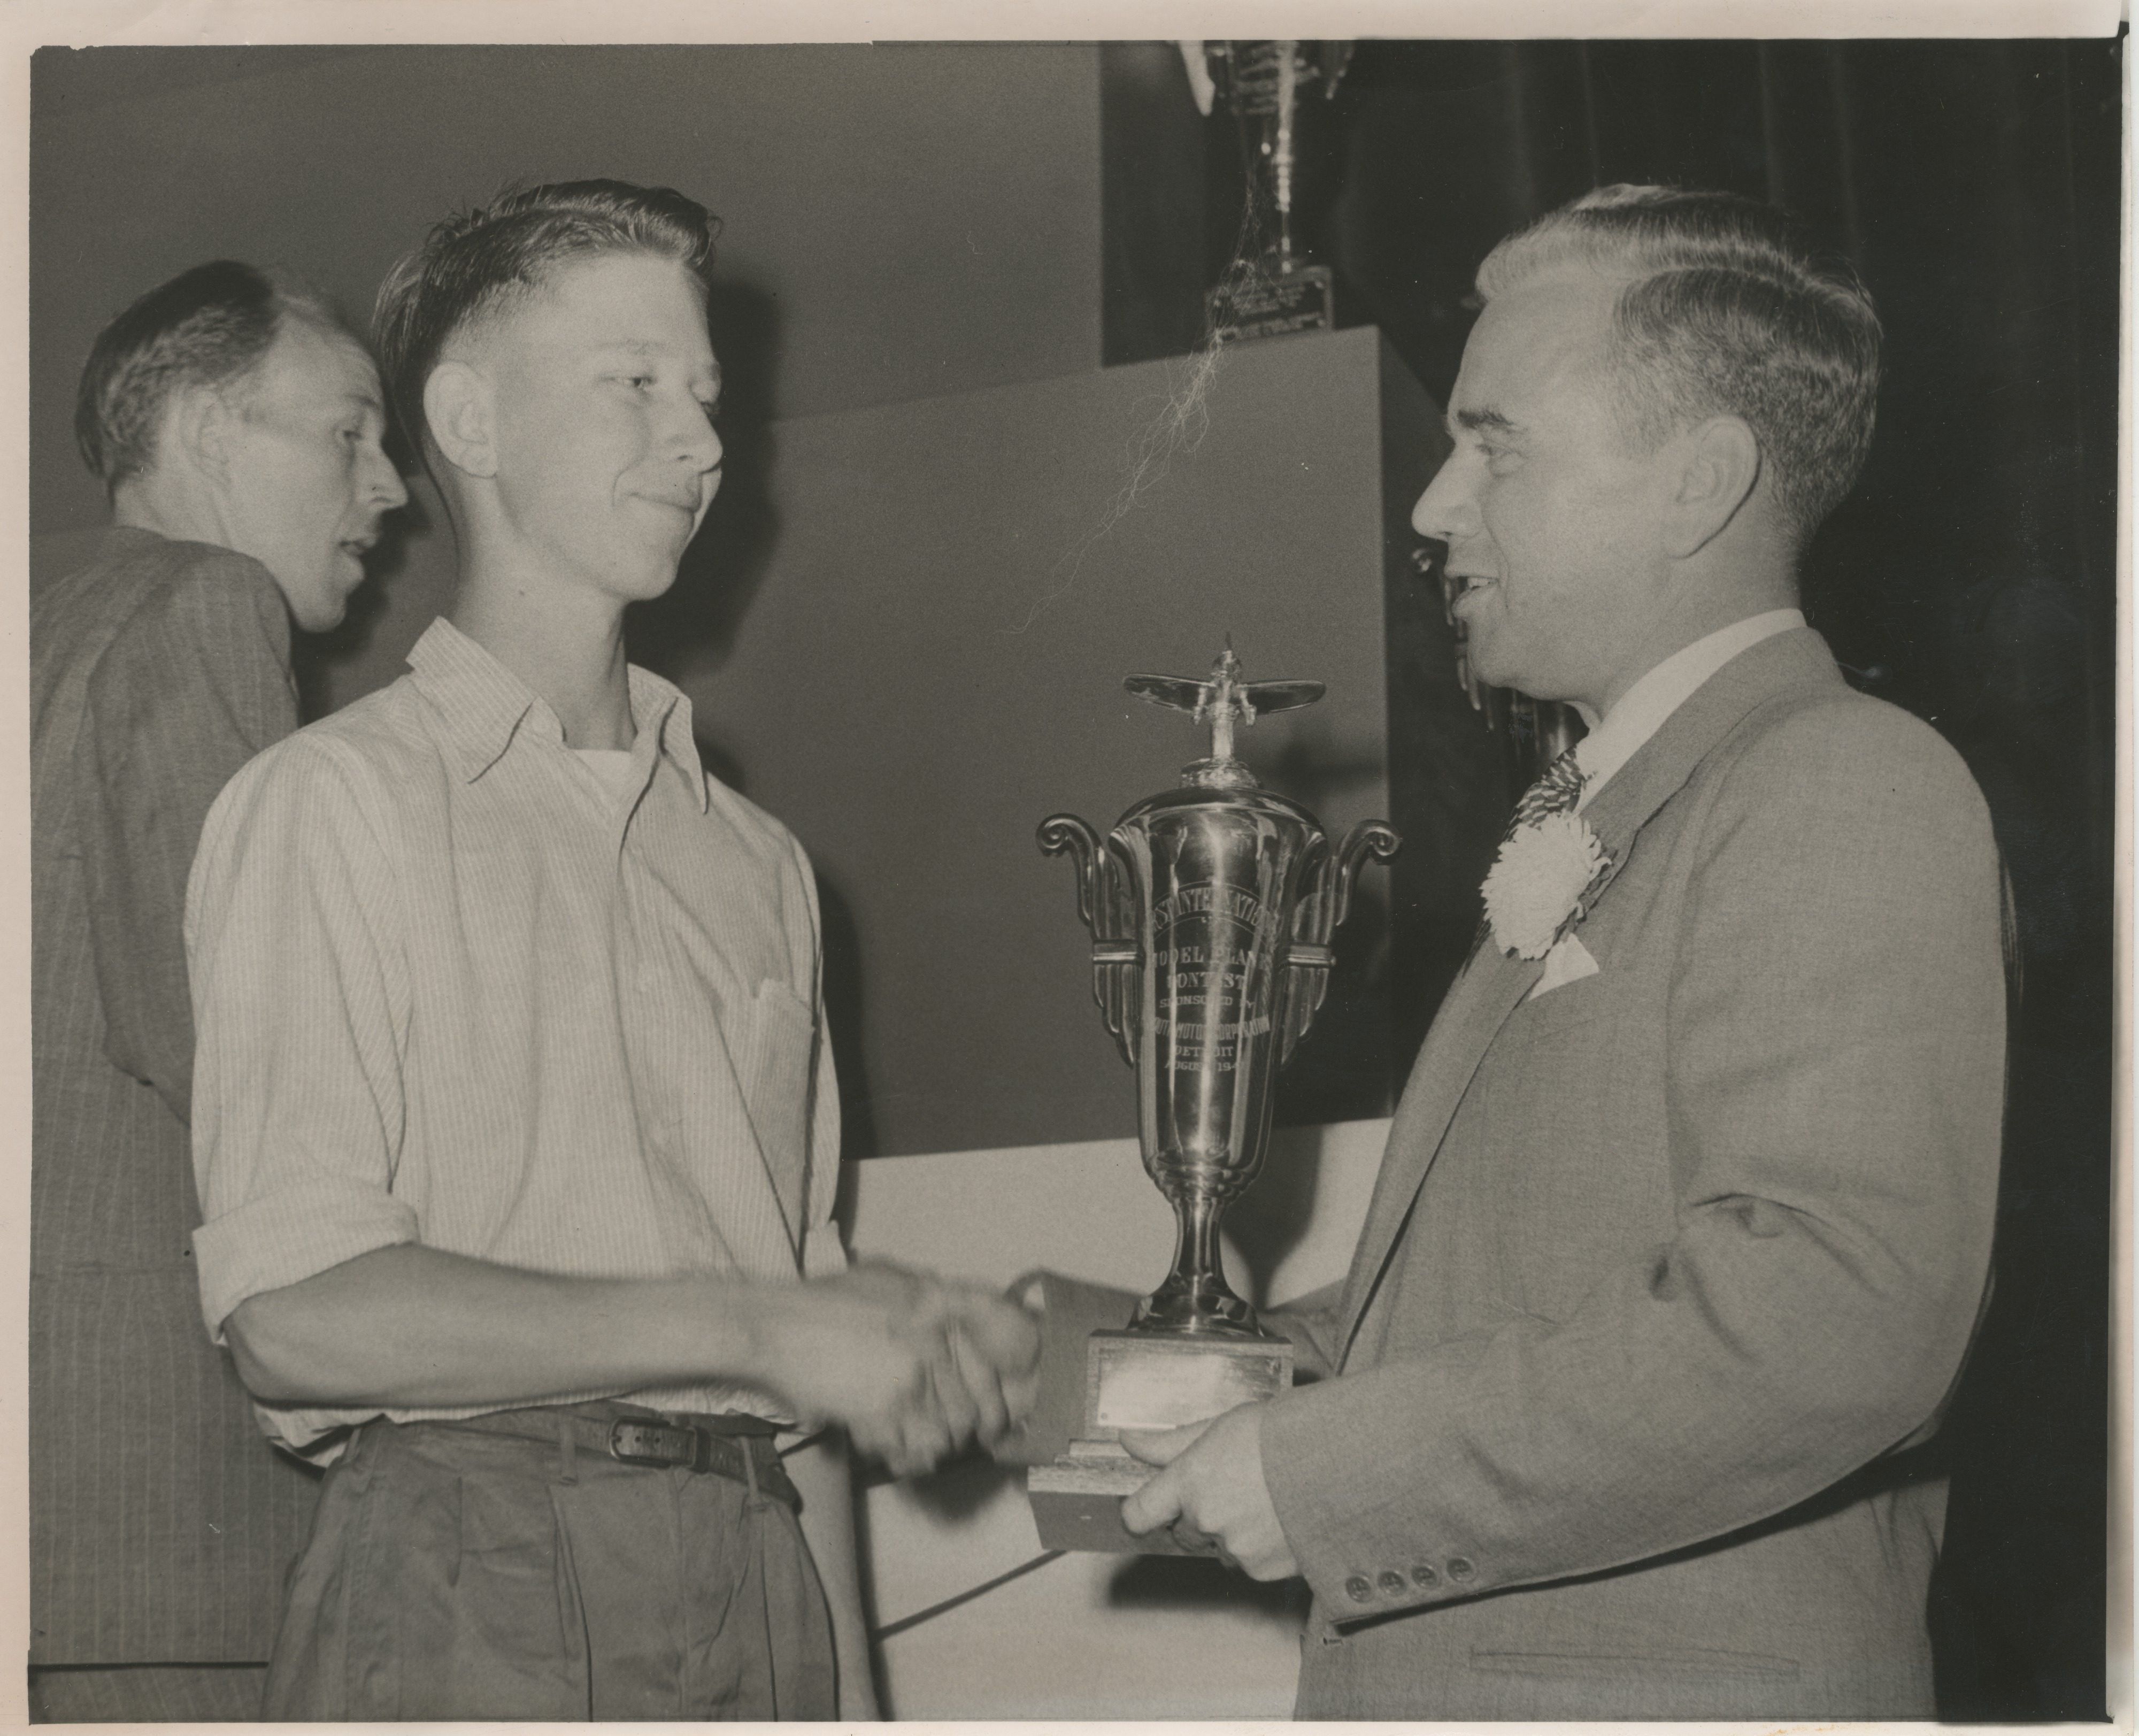 Erwin Paul Wallaker Accepting Trophy at Model Plane Contest, 1947 image